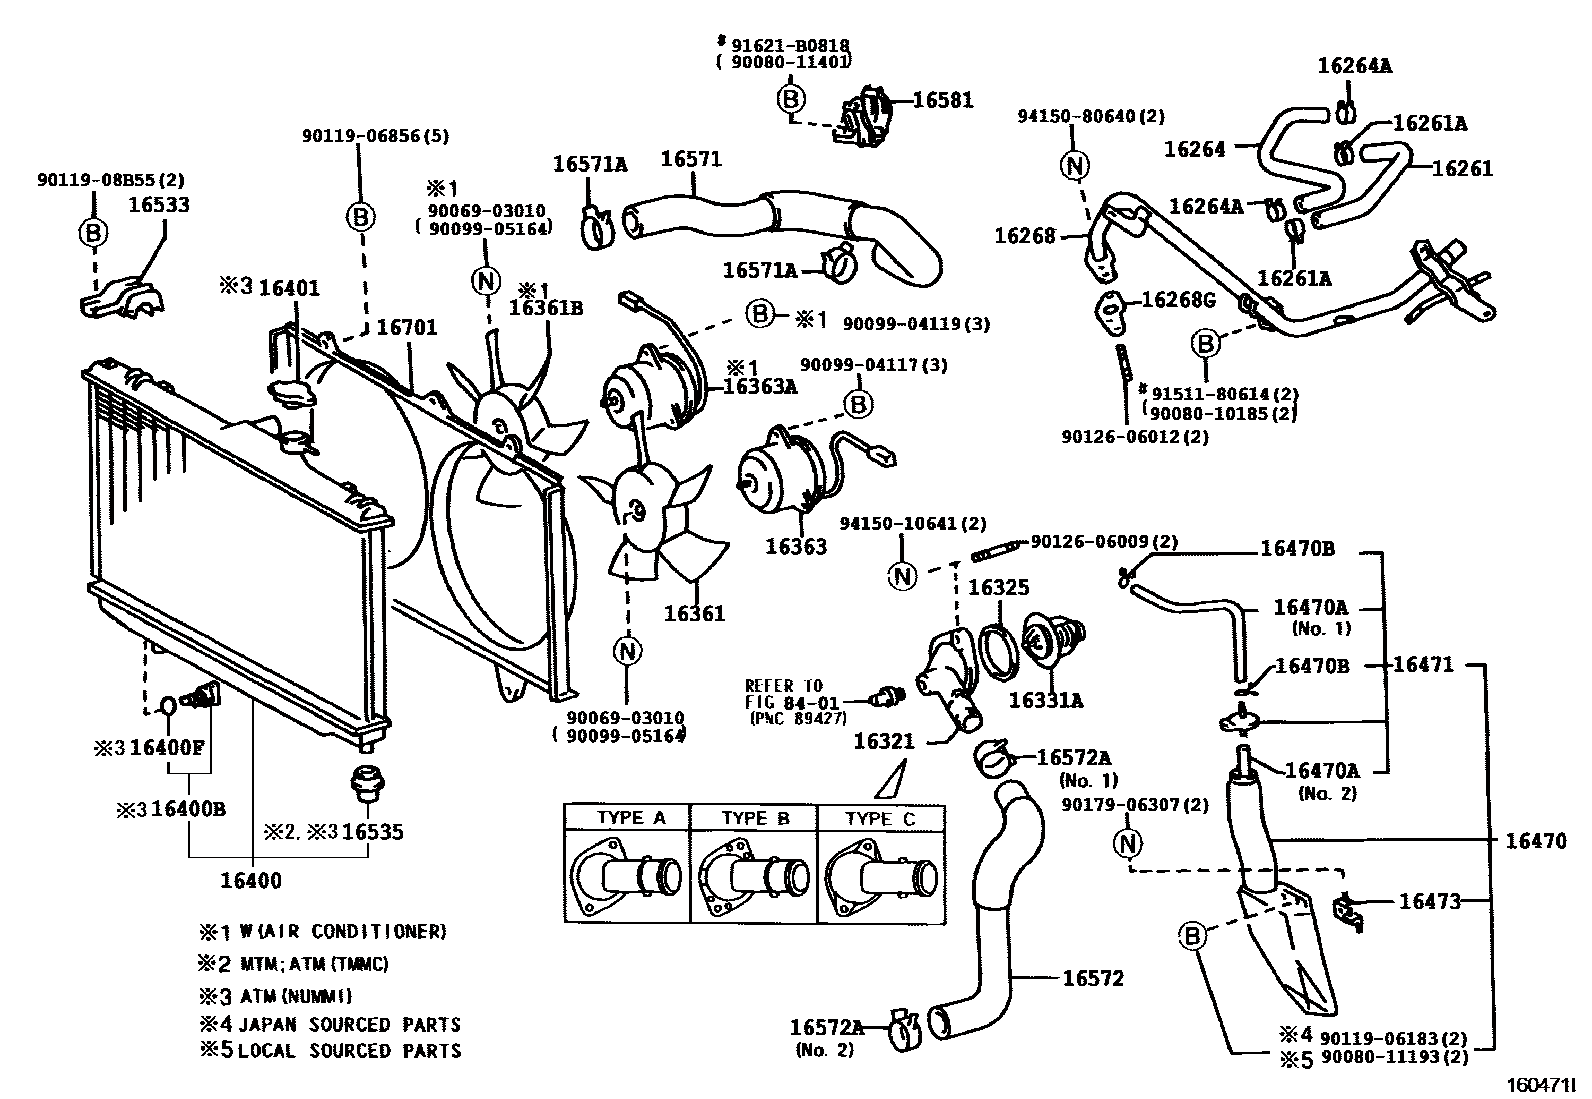 wiring diagram for star delta motor starter with Honda Civic Fuel Line Replacement on Briggs And Stratton 20 Hp V Twin Wiring Diagram further Cara Kerja Dinamo Starter Atau Motor Stater Pada Mobil furthermore Wye Delta Reduce Voltage Starter further Star Delta Starter likewise Submersible Pump Control Box Wiring Diagram.